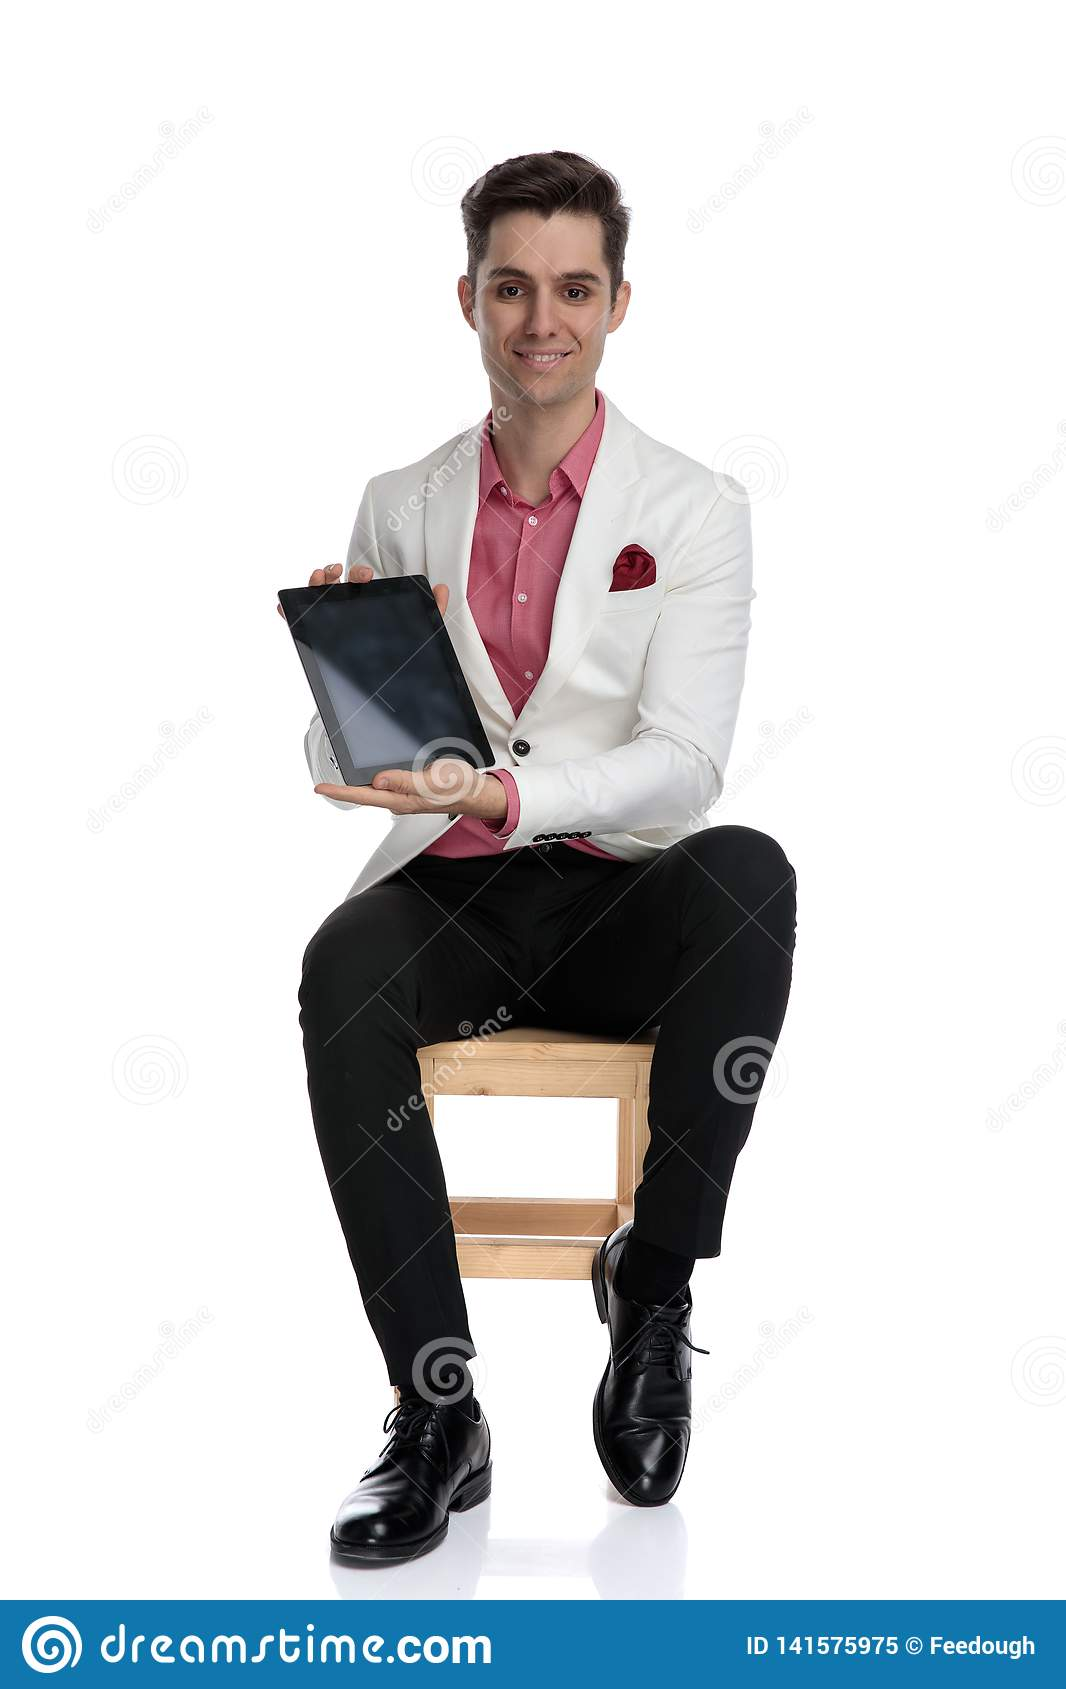 Smiling seated businessman showing blank screen of a tablet